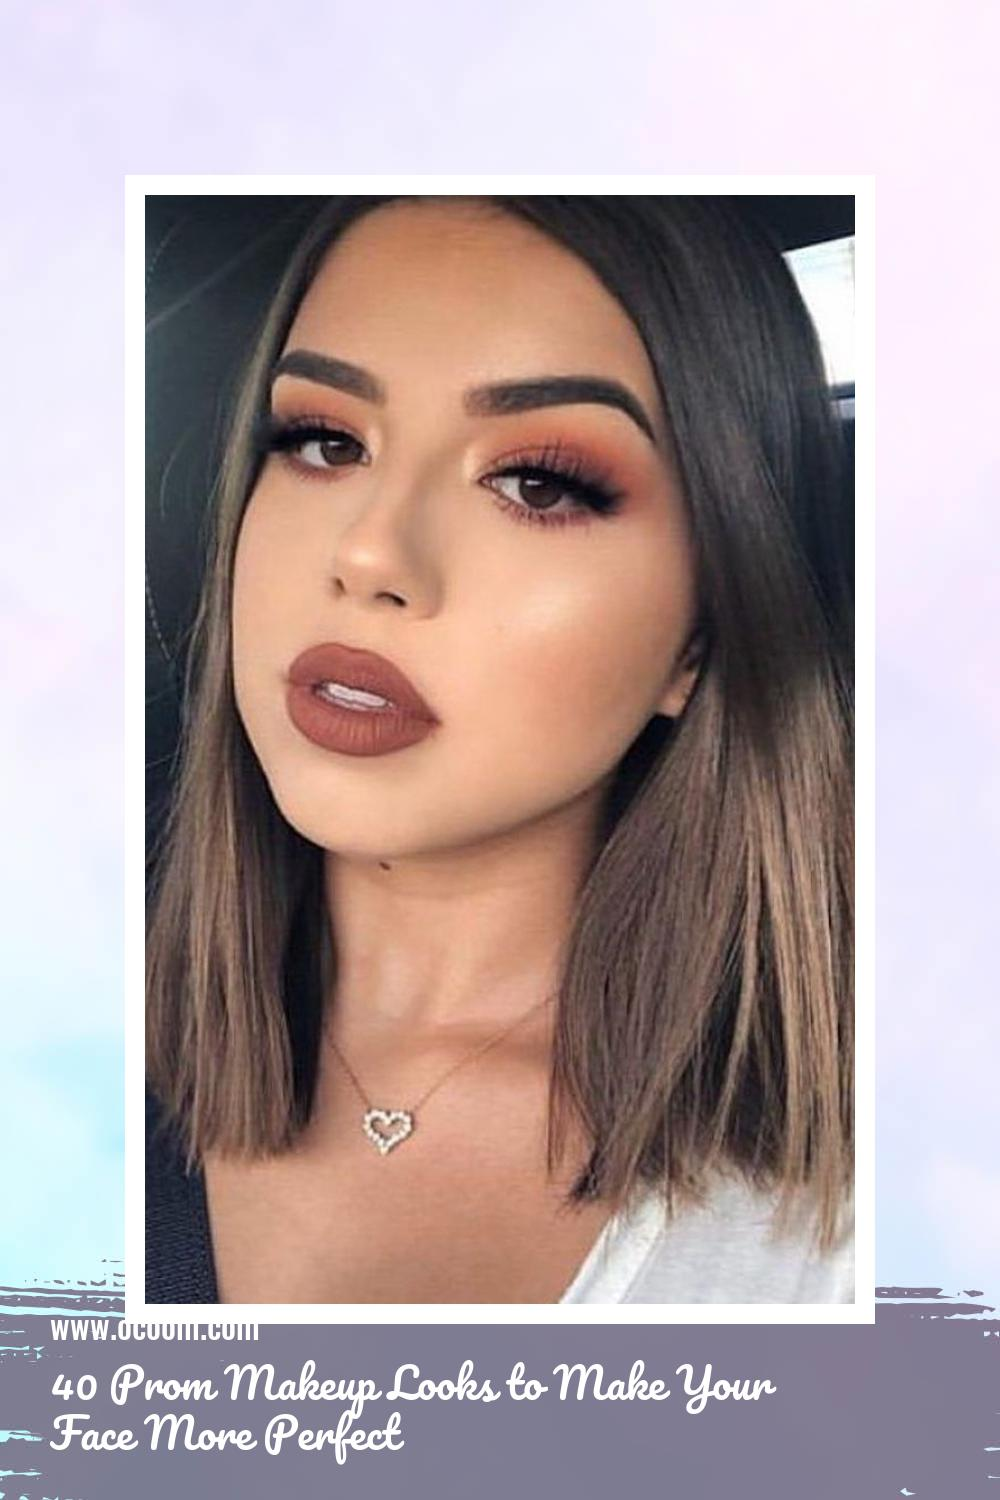 40 Prom Makeup Looks to Make Your Face More Perfect 15